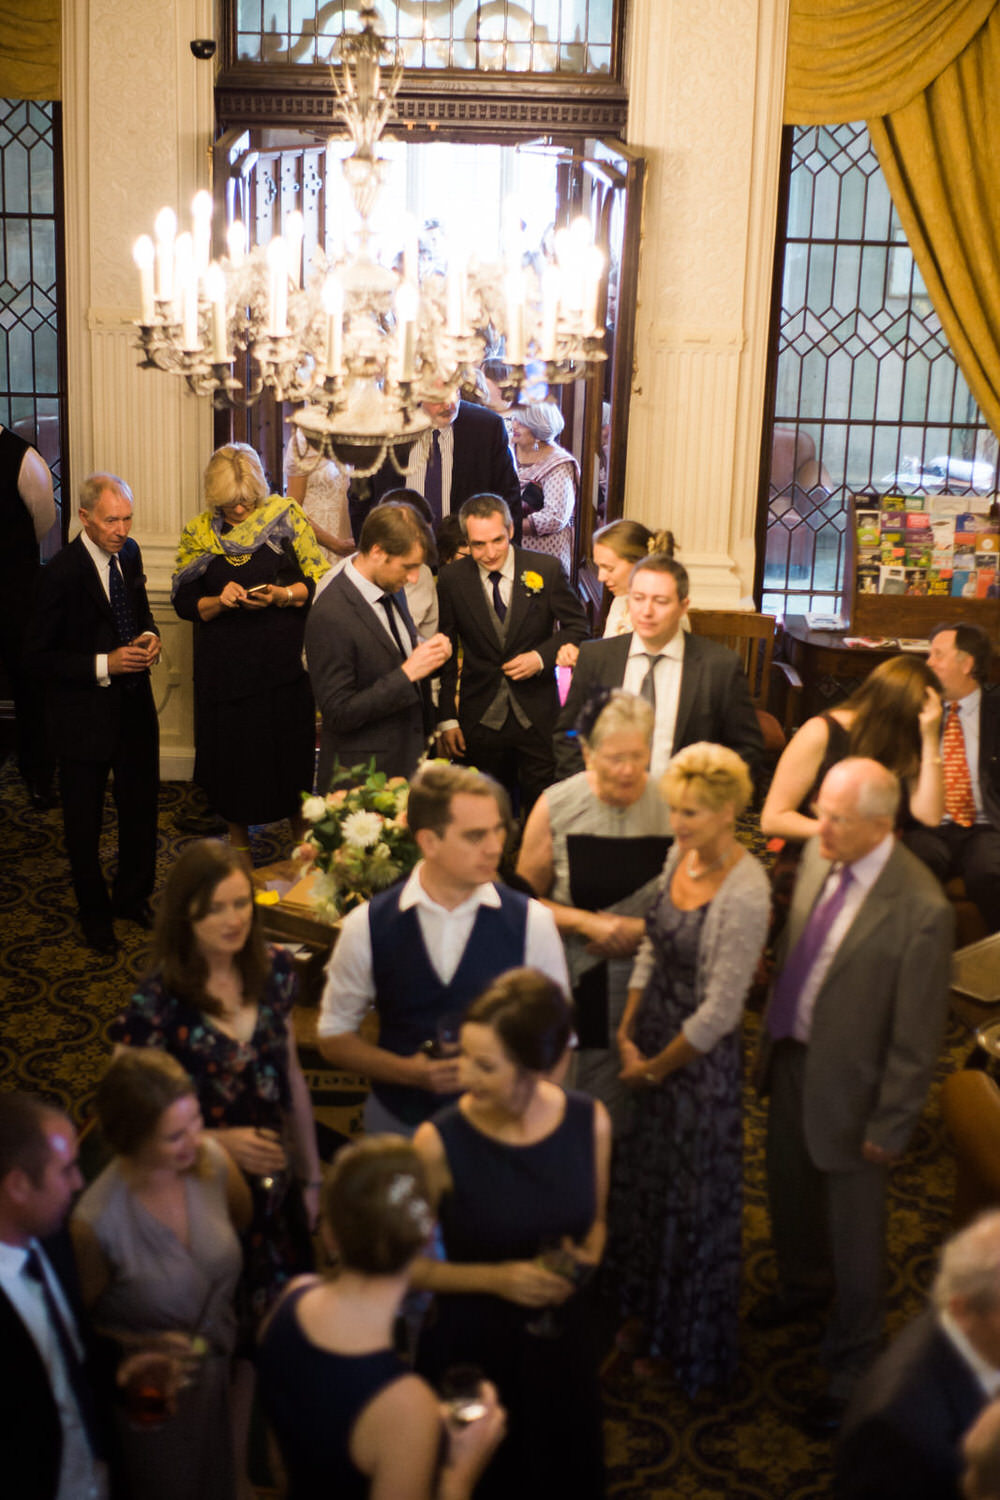 Special-Day-Photography-Dumbleton-Hall-hotel-Evensham-Guests-arriving-for-wedding-breakfast-at-Dubleton-Hall-Hotel.jpg